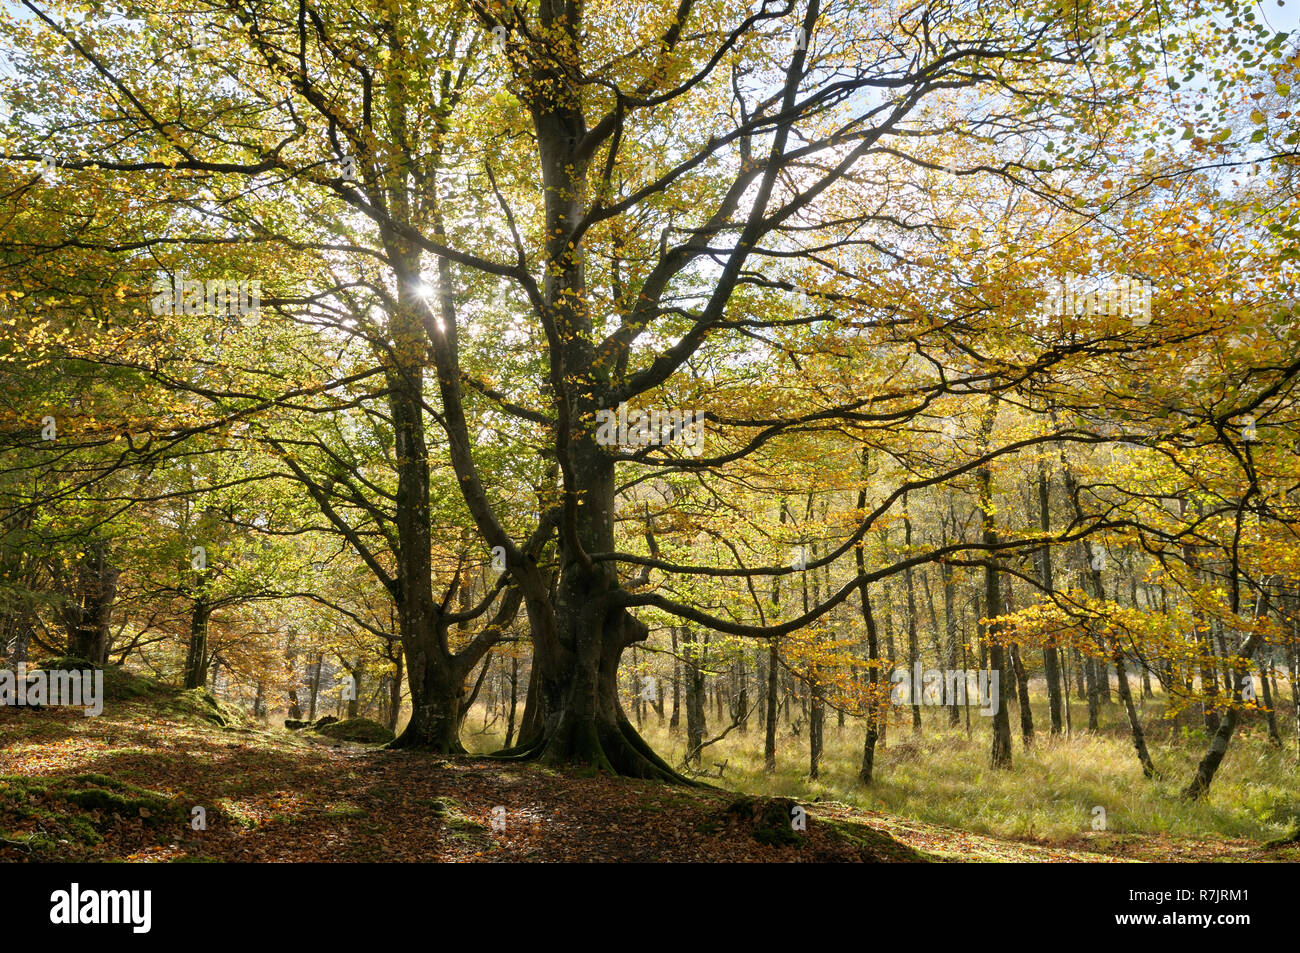 Beech trees in autumn sunshine, Lake District, Keswick, Cumbria, England, UK - Stock Image